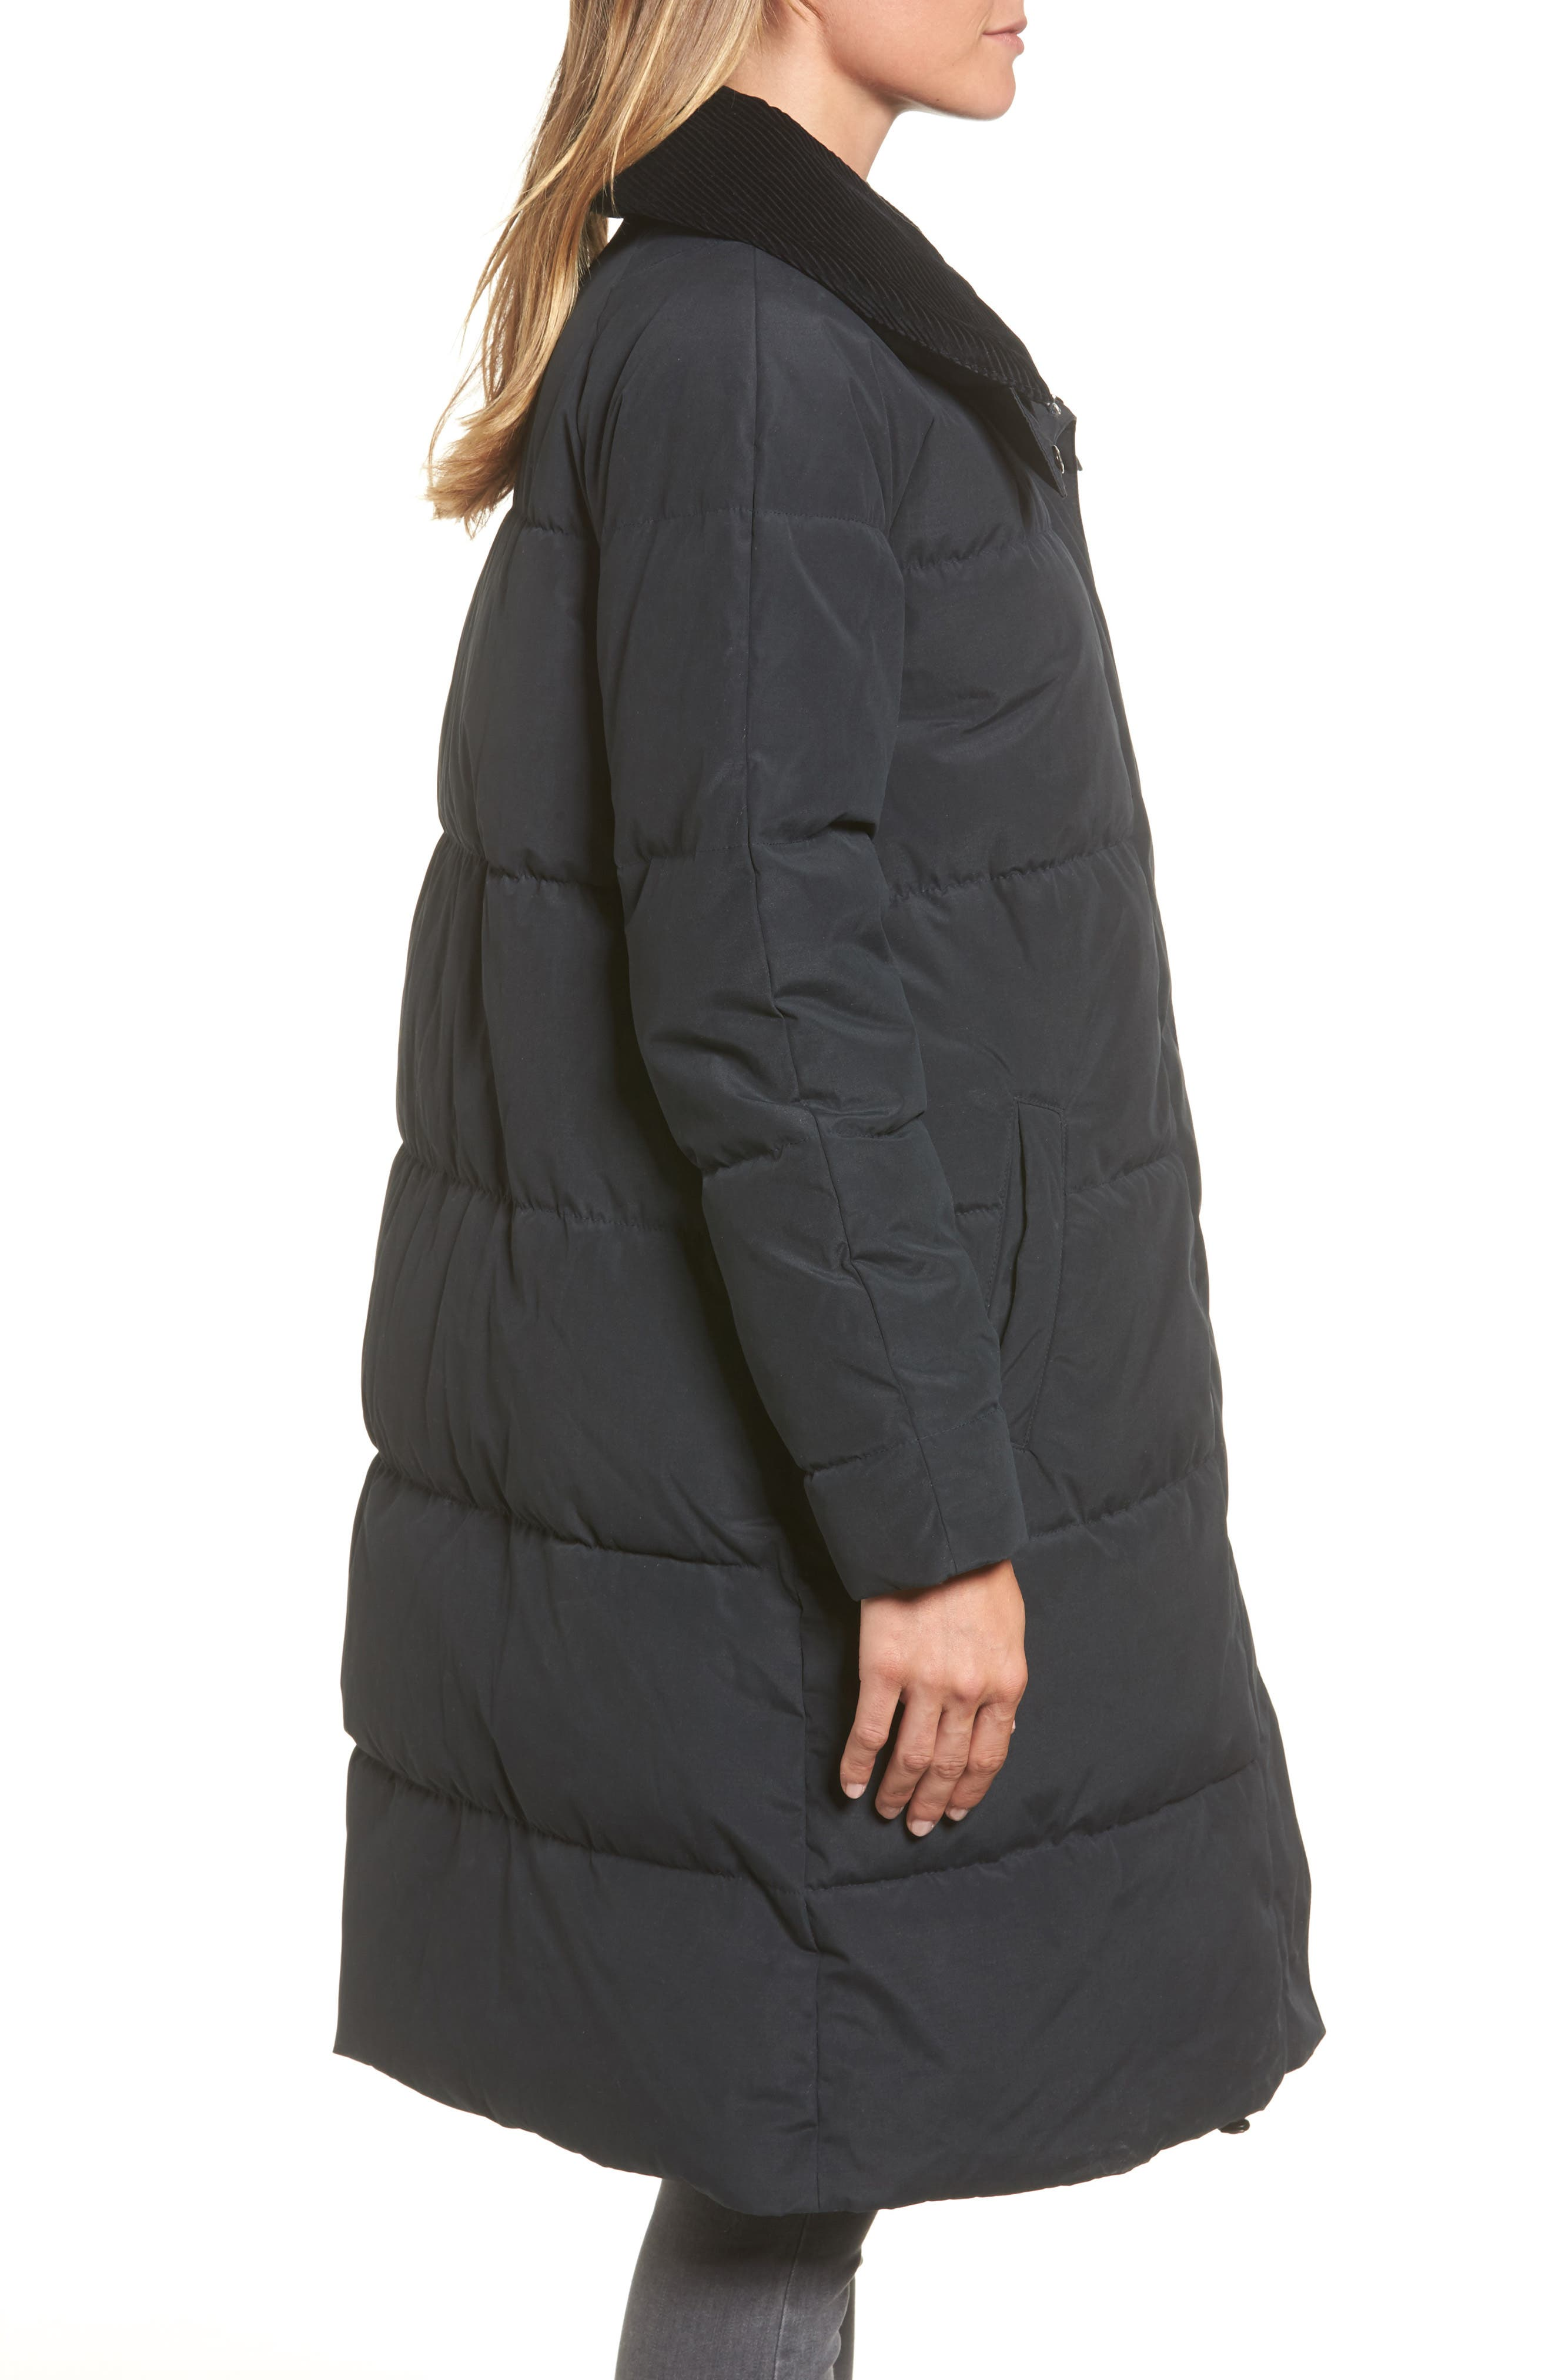 Leck Water Resistant Baffle Quilted Coat,                             Alternate thumbnail 3, color,                             410